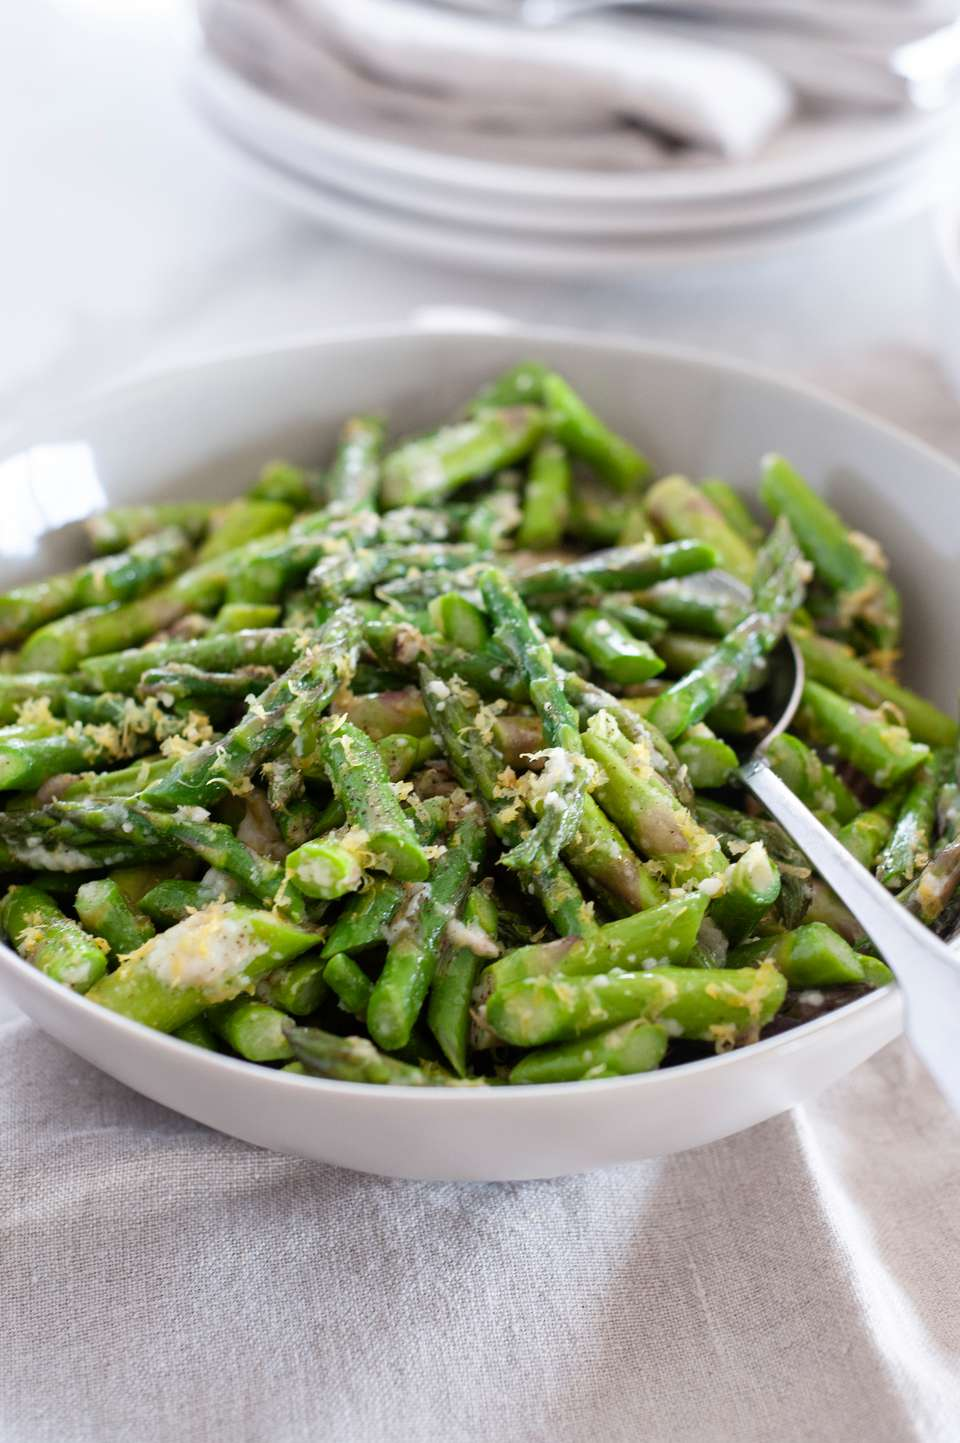 The best asparagus in a serving bowl.